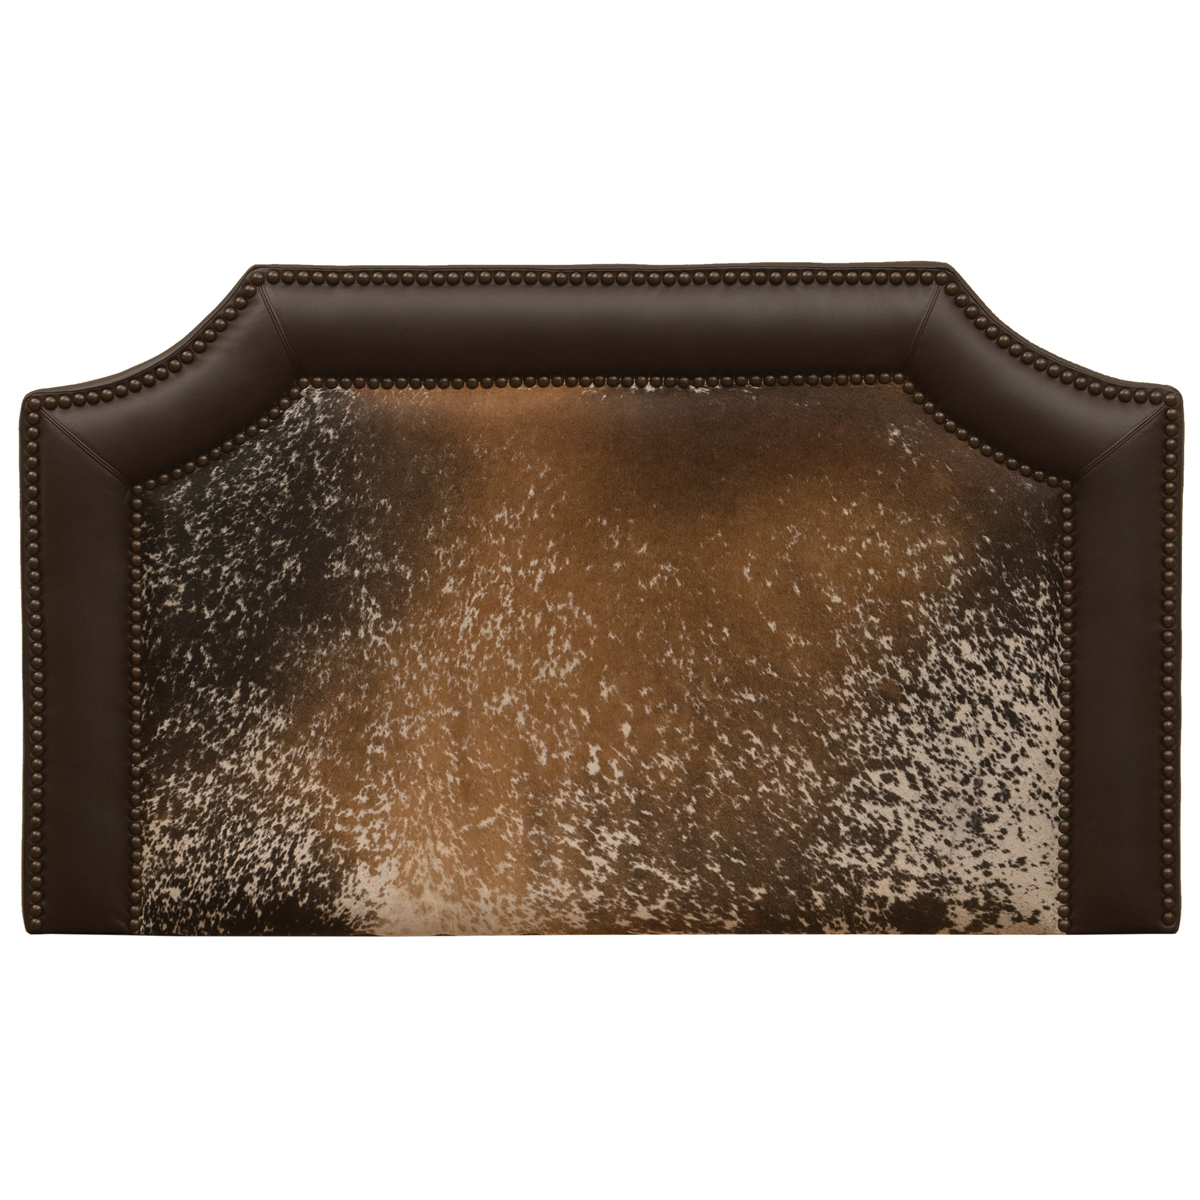 Outlaw Speckled Hair on Hide Headboard - Full